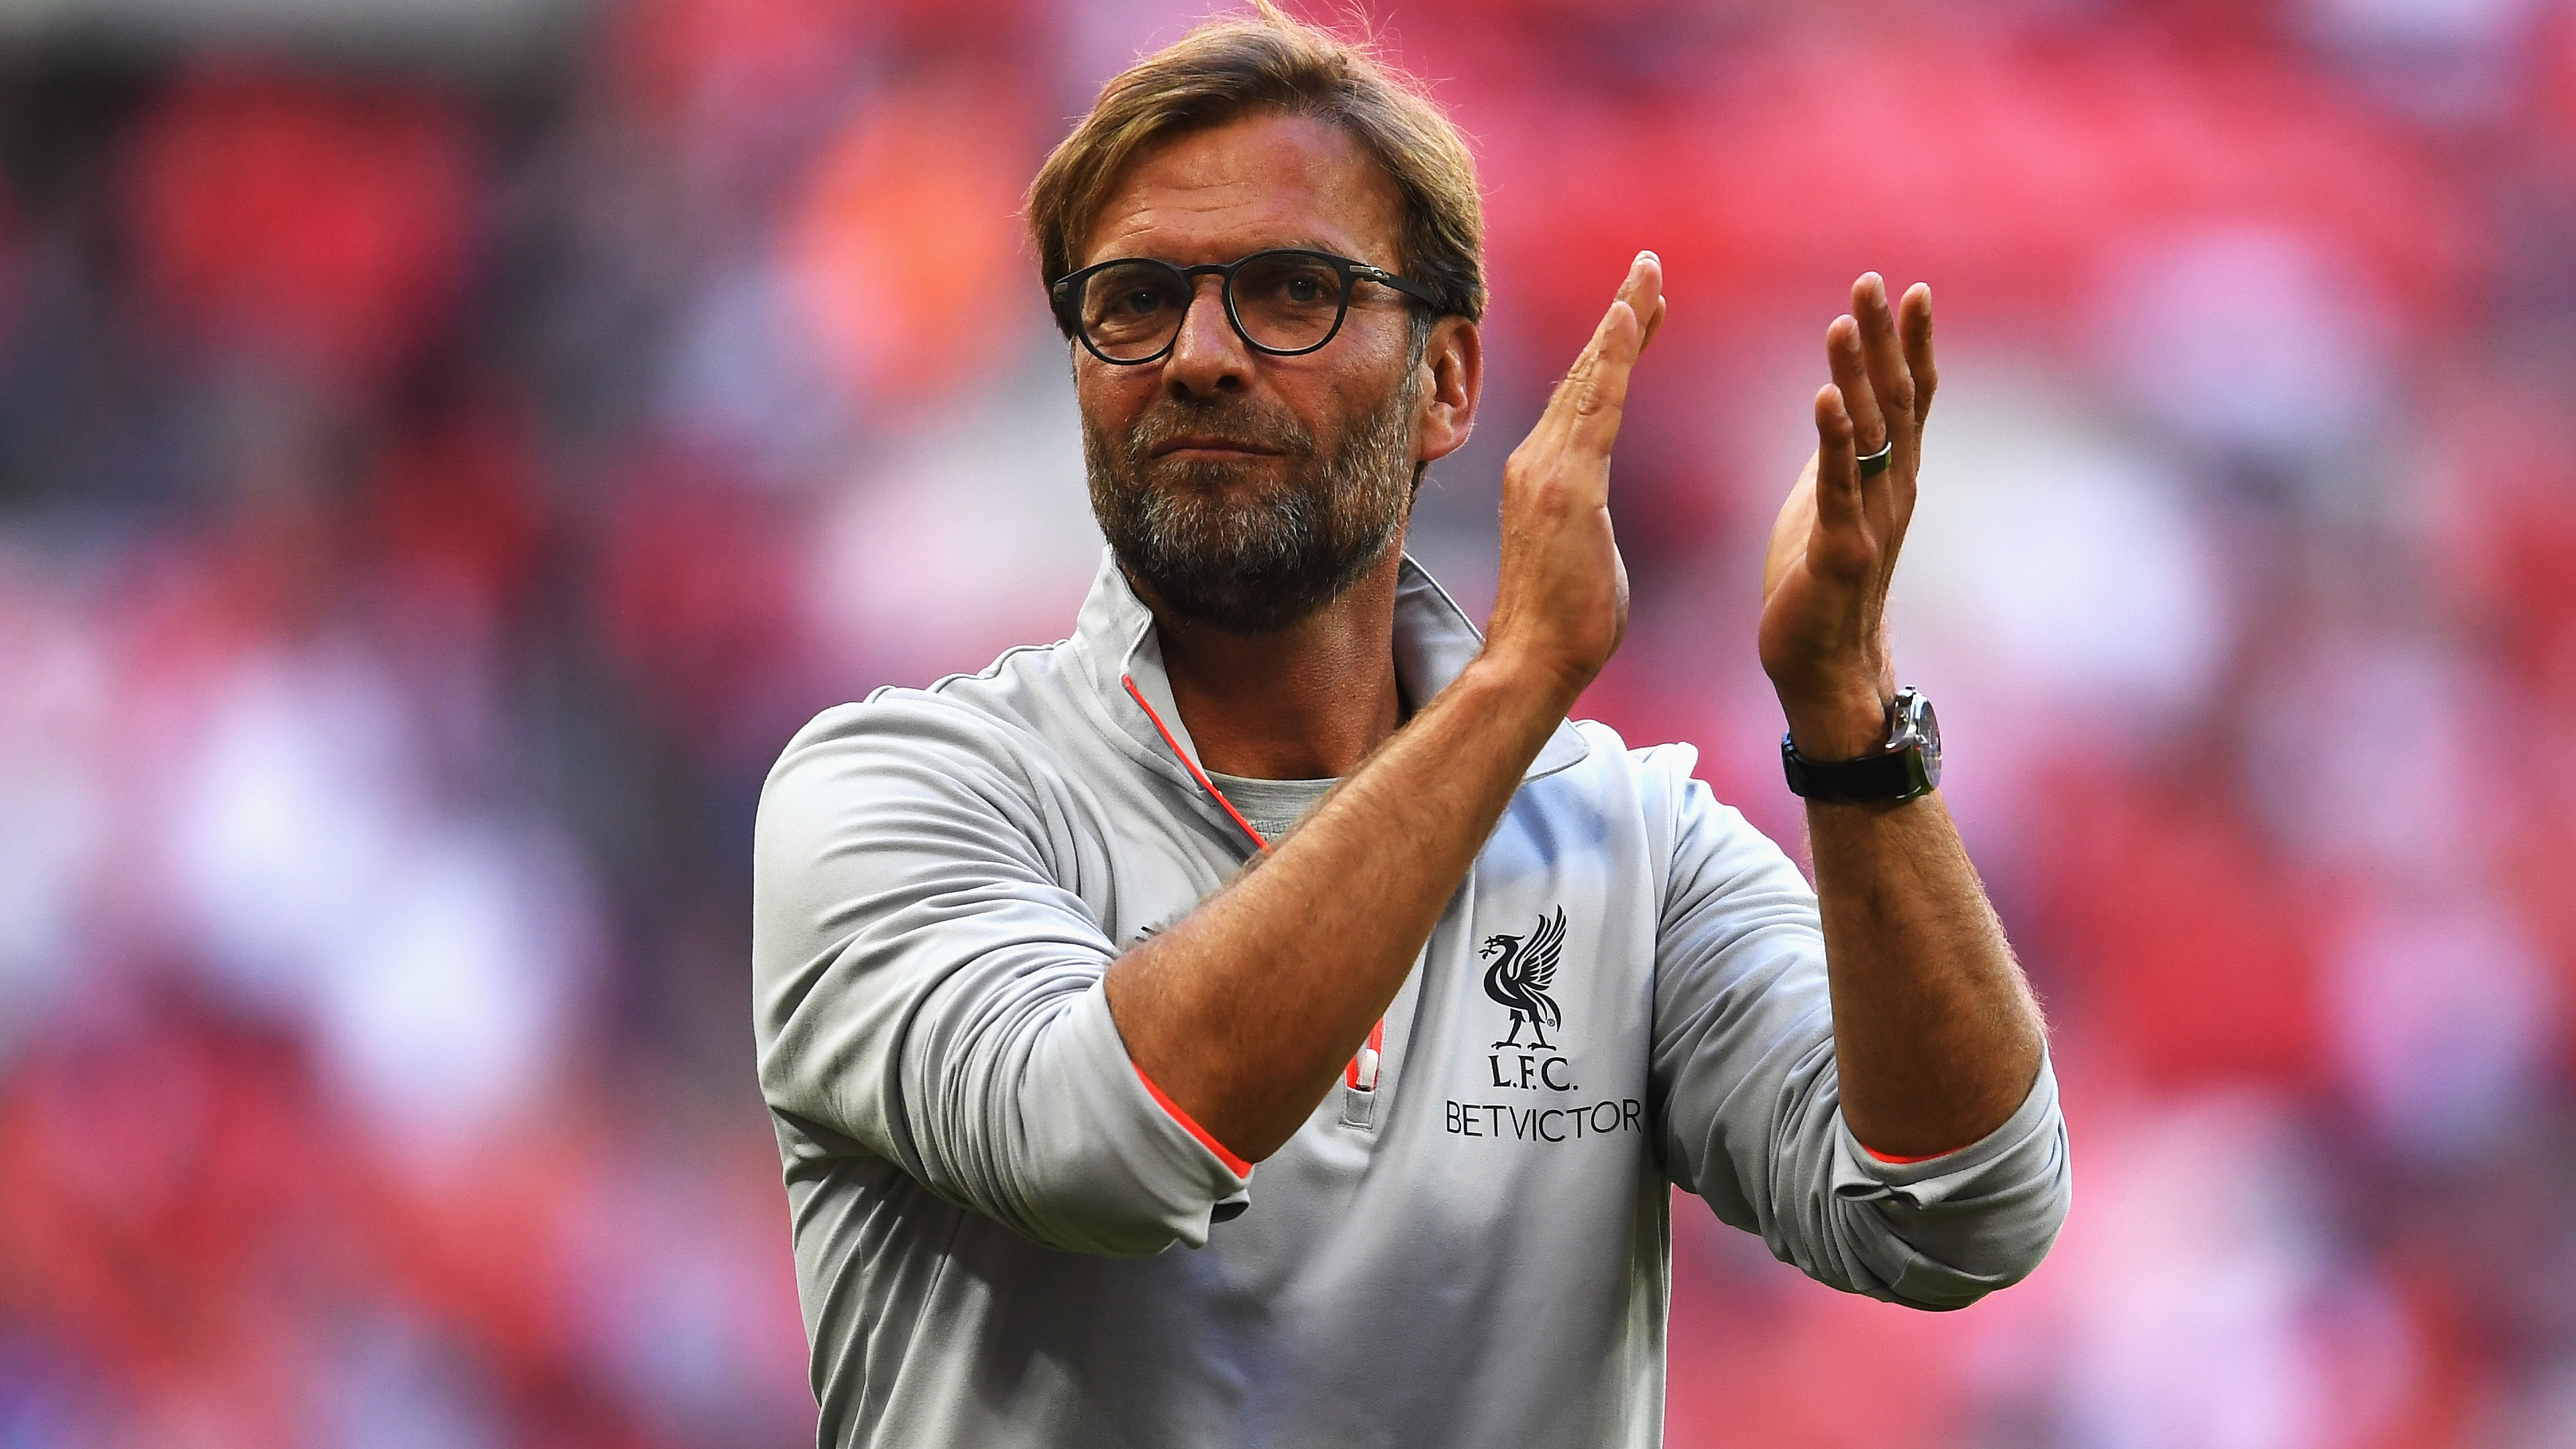 Liverpool Fc Manager Replies To Young Manchester United Fan S Letter Asking Him To Lose